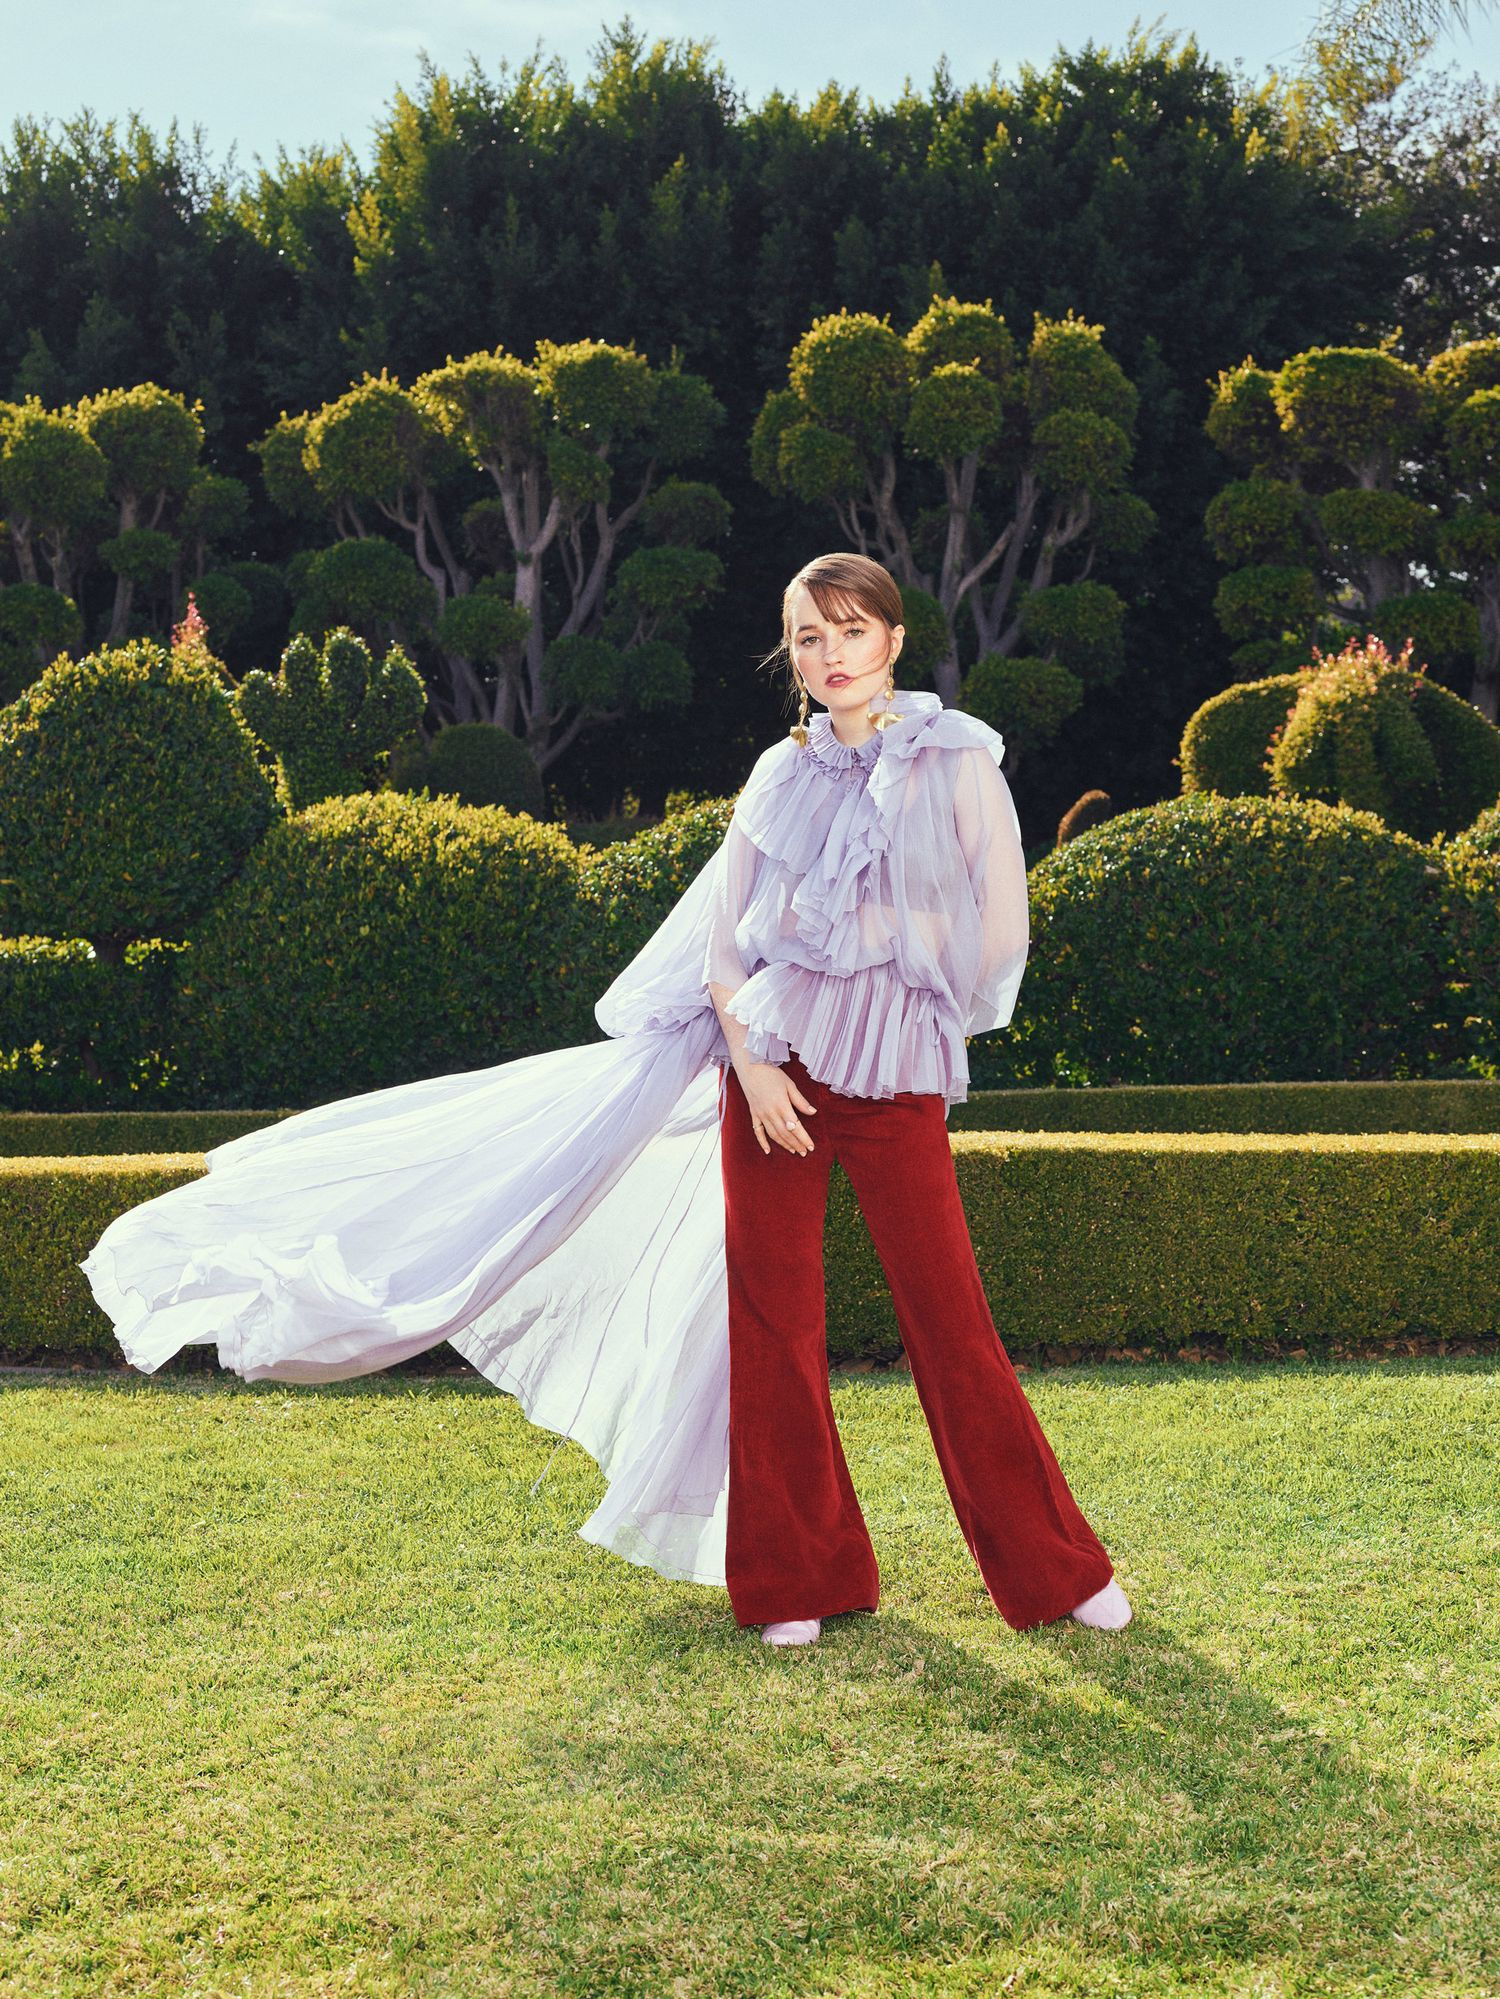 Katilyn Dever in a modern garden wearing red pants and a long flowing top.